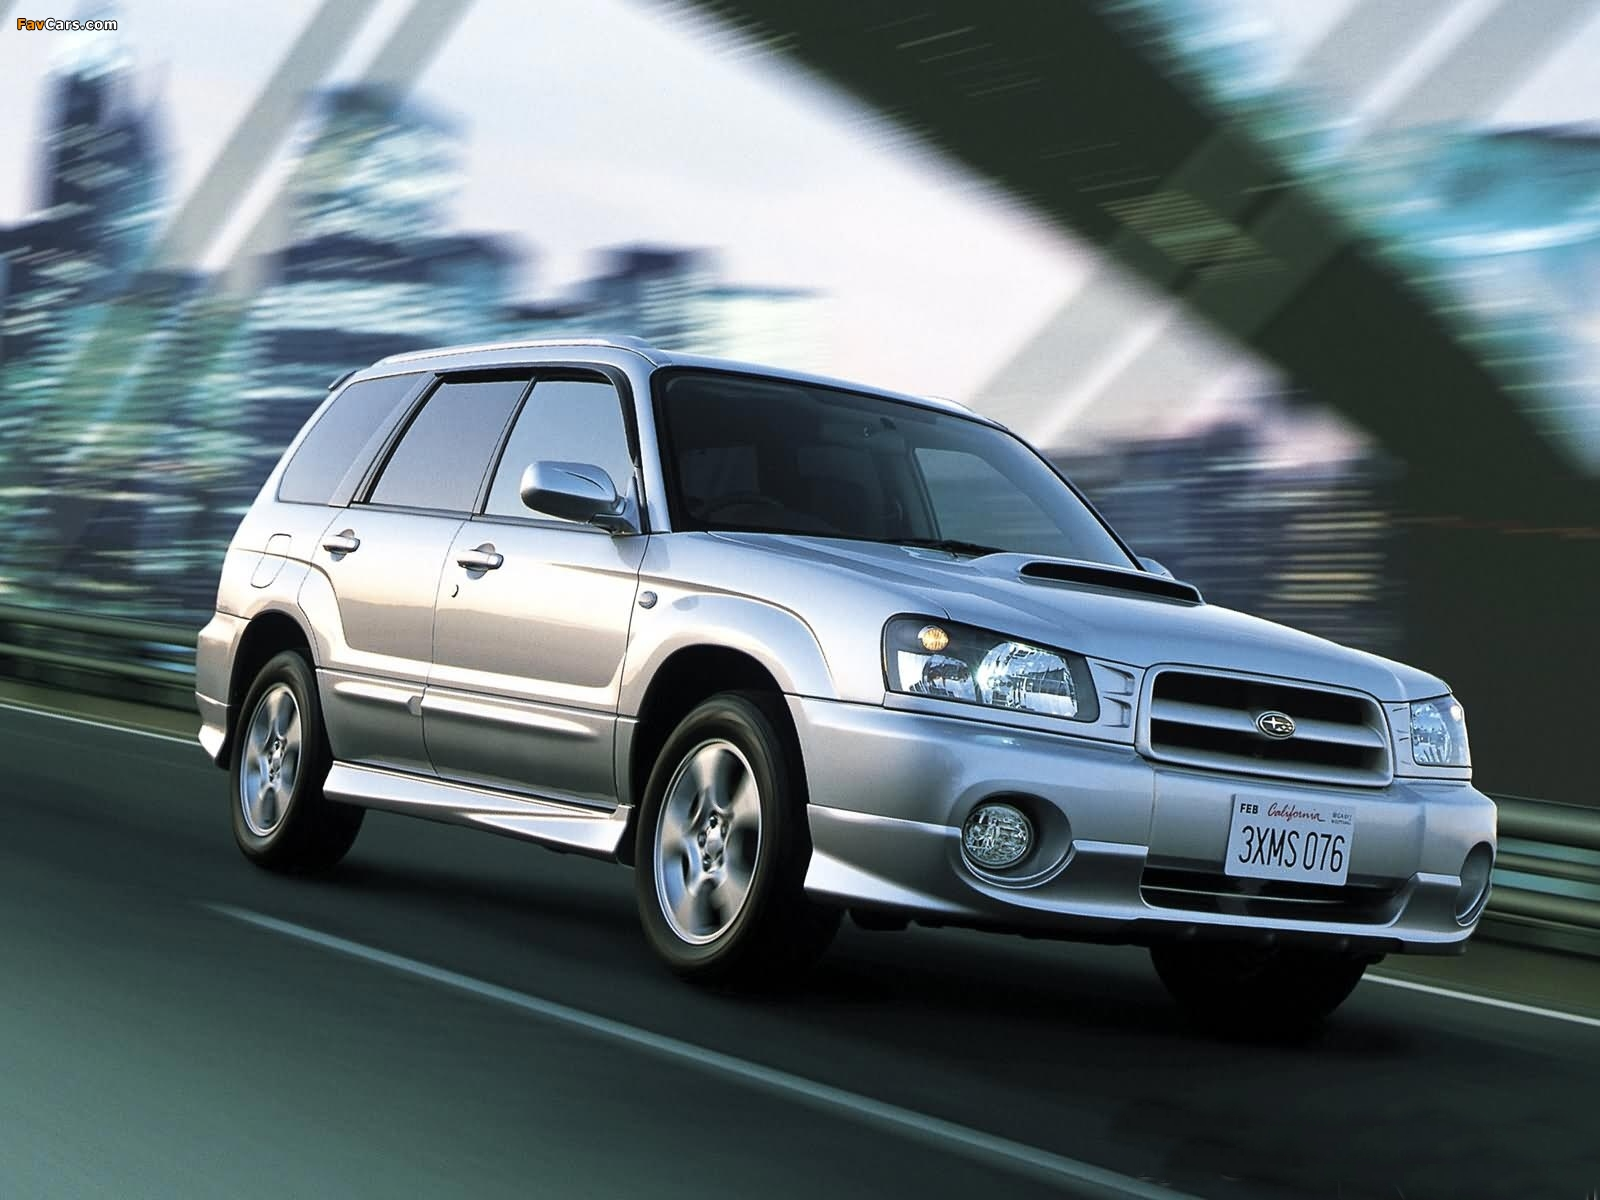 Images of Subaru Forester (1600 x 1200)